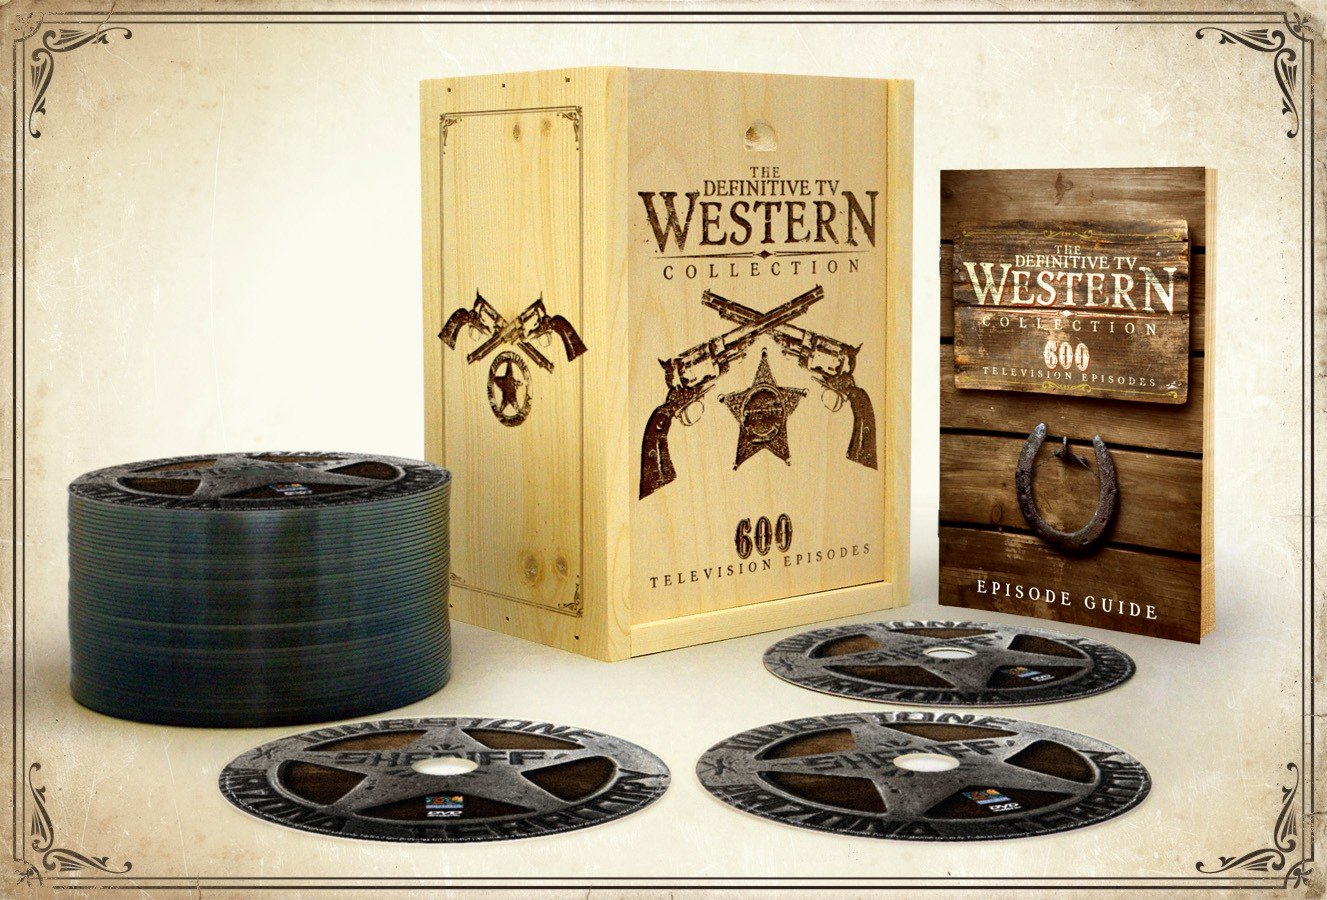 Definitive TV Western Collection - 600 Television Episodes by DIGITAL1STOP